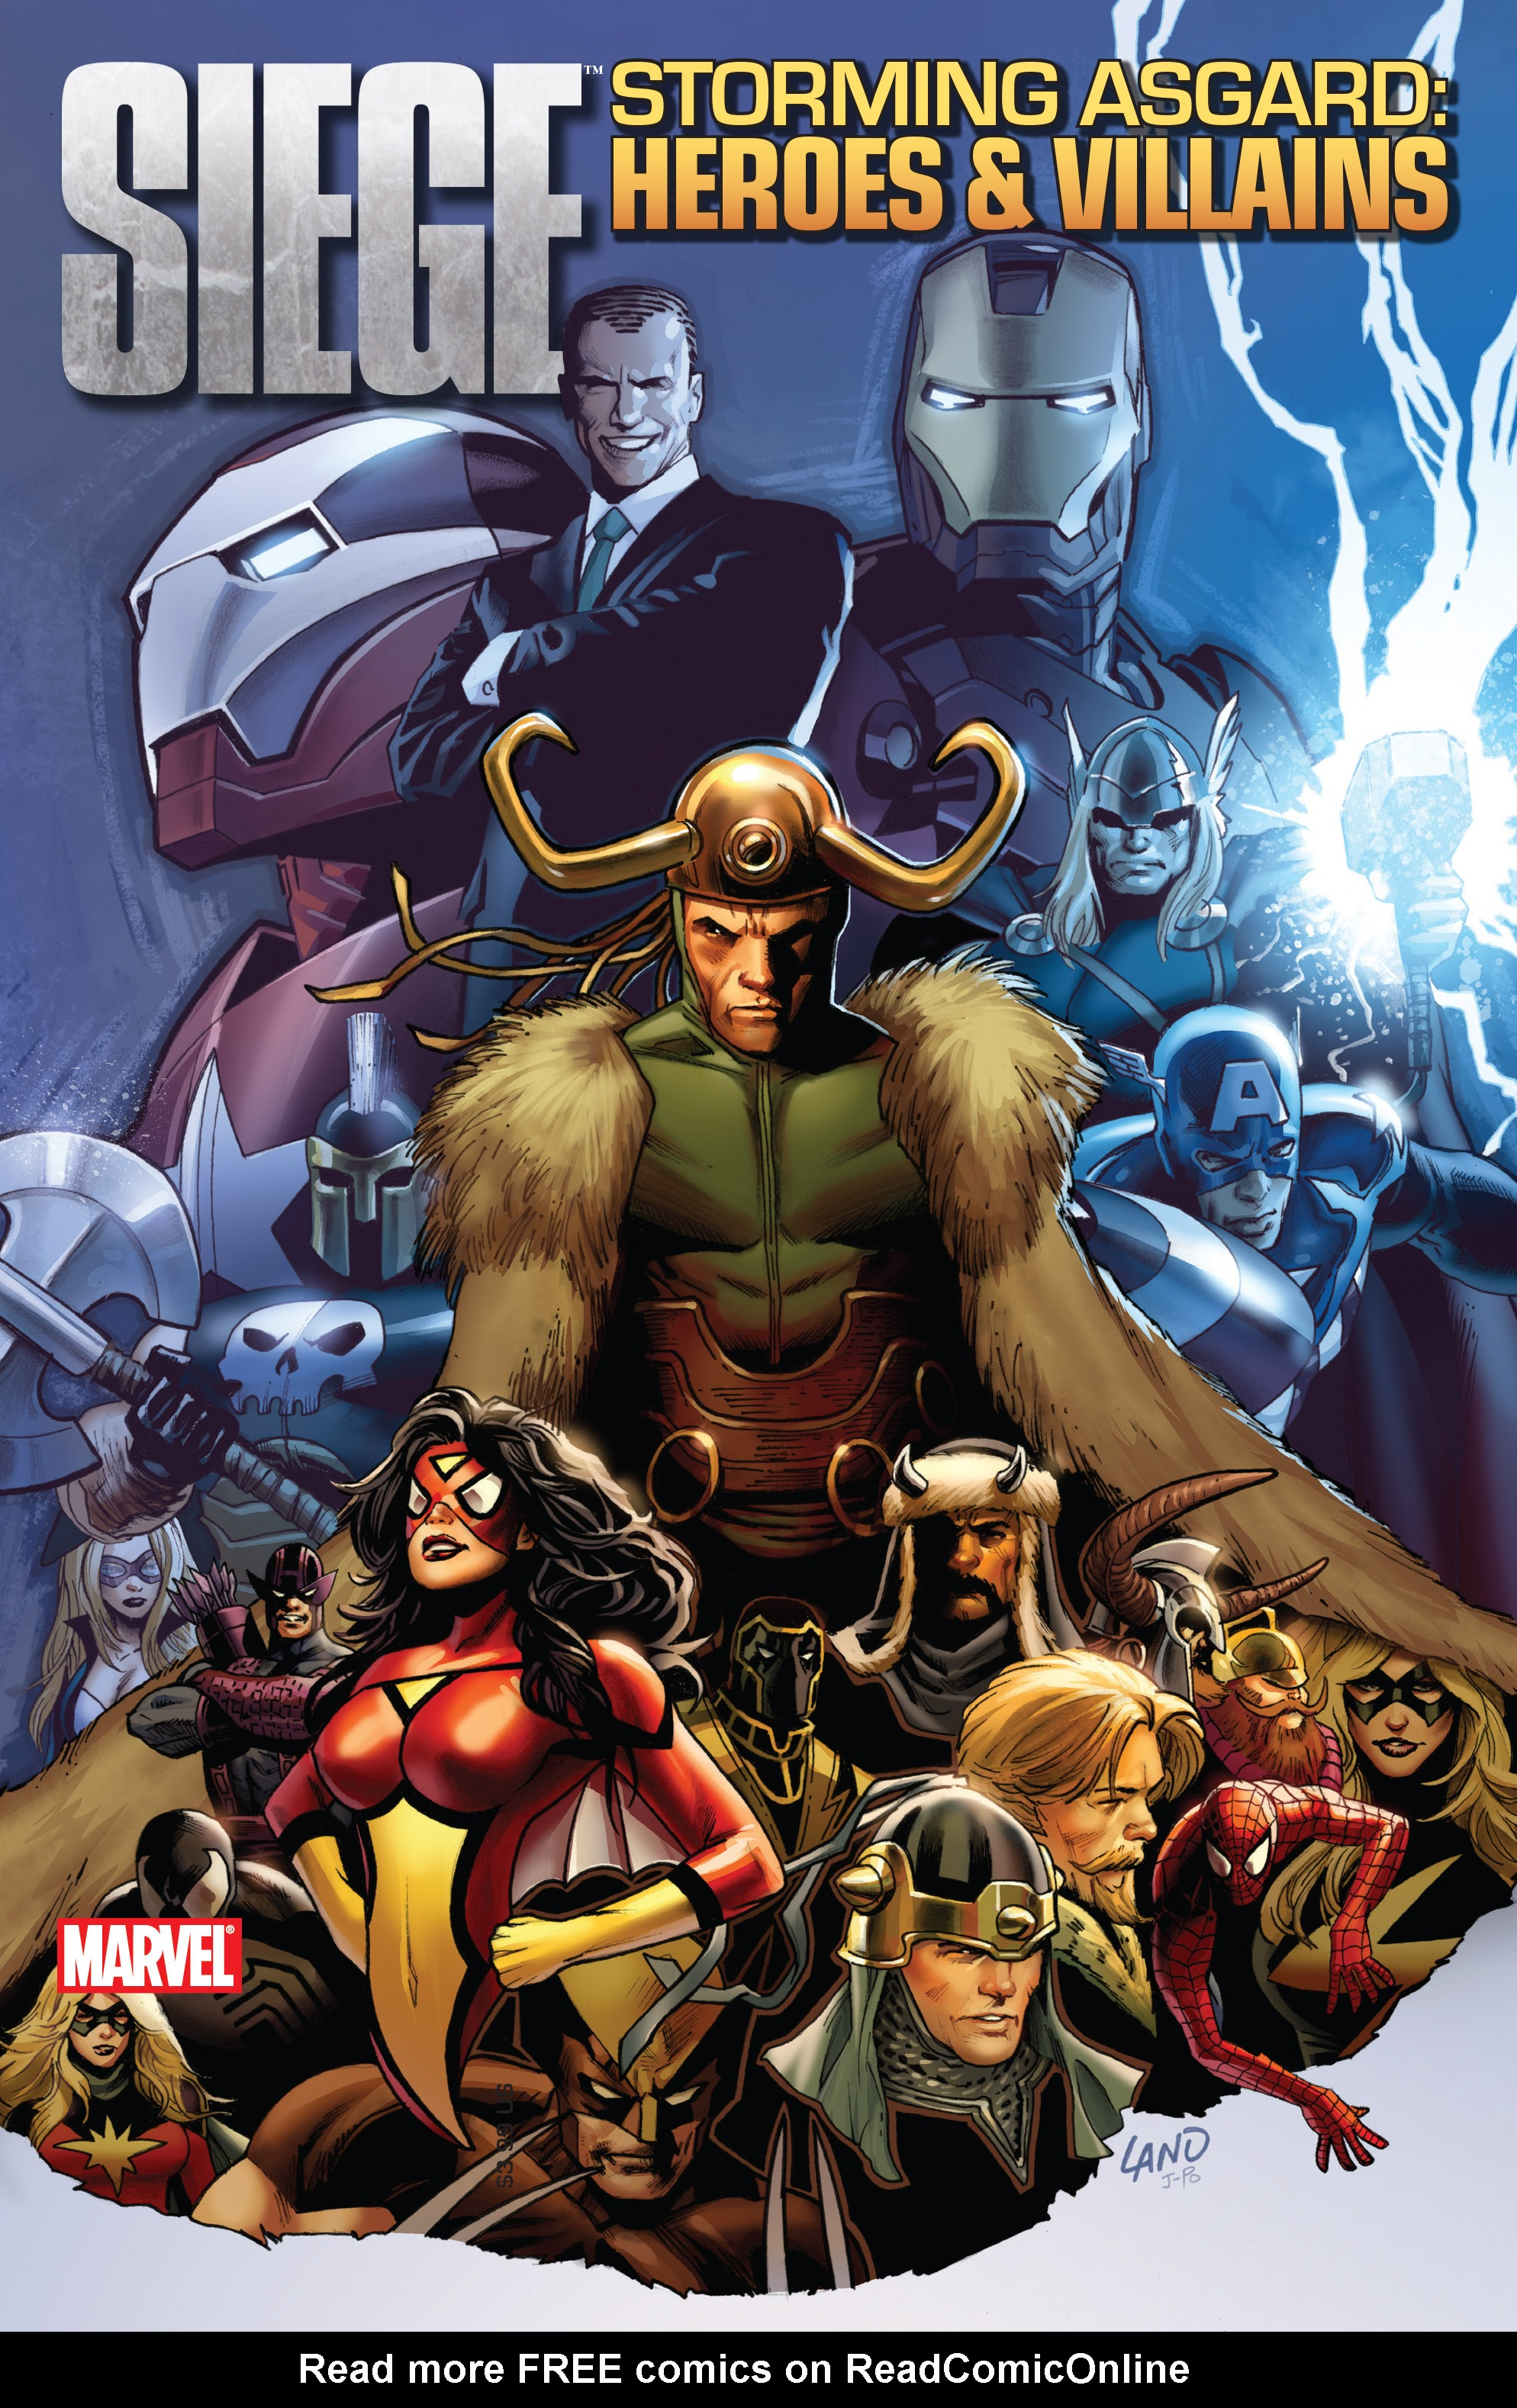 Read online Siege: Storming Asgard - Heroes and Villains comic -  Issue # Full - 1